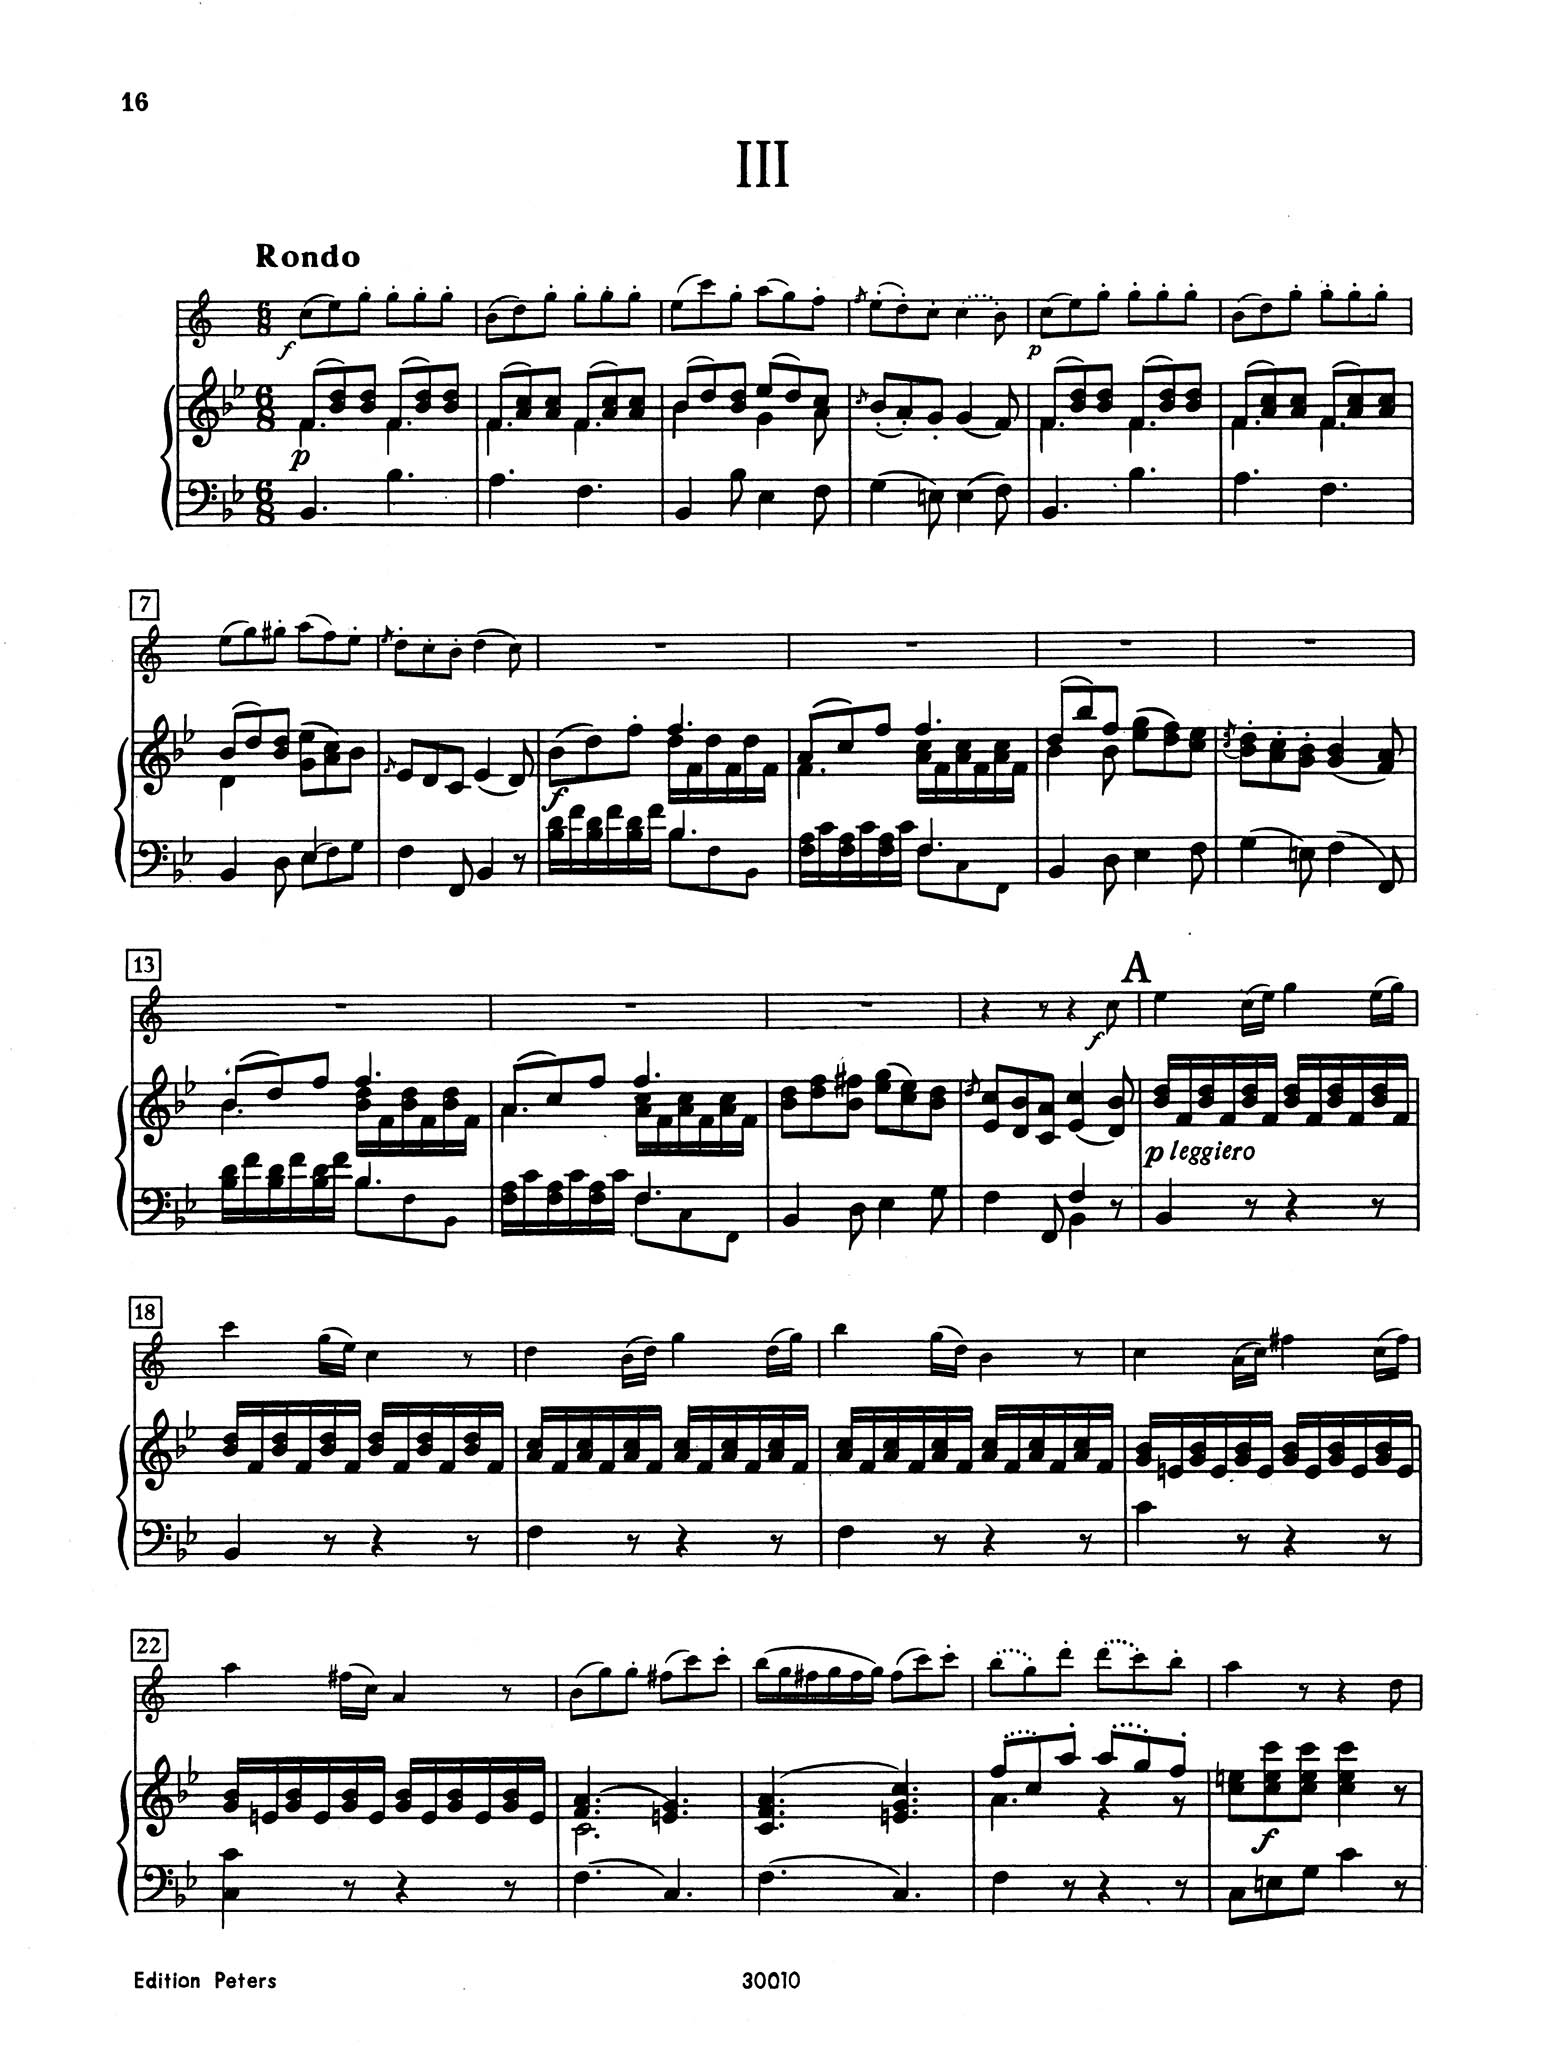 Clarinet Concerto No. 7 (Kaiser) in B-flat Major - Movement 3